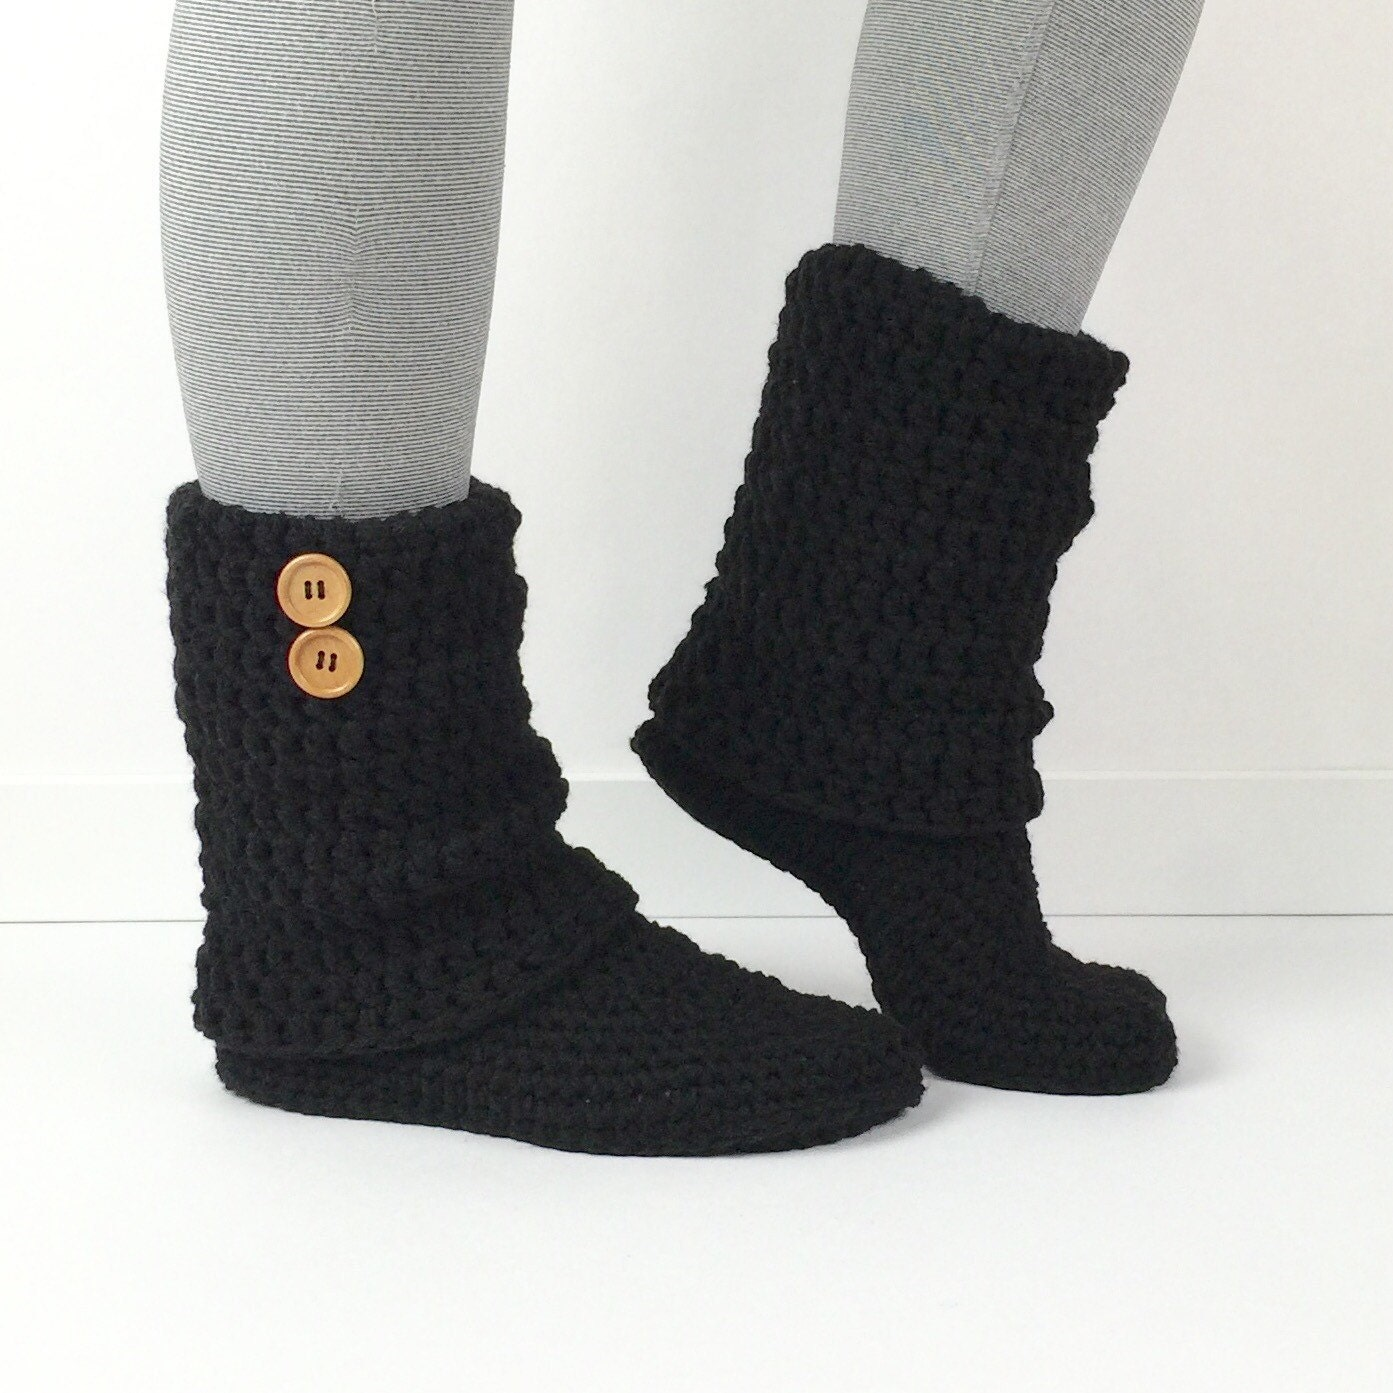 The best slippers for women. This not only makes the slippers outdoor shoes, but can help them feel sturdier and more supportive. The Bearpaw Loki slippers (women's) seemed promising, but for one tester the sheepskin lining felt artificial and clammy on bare feet.